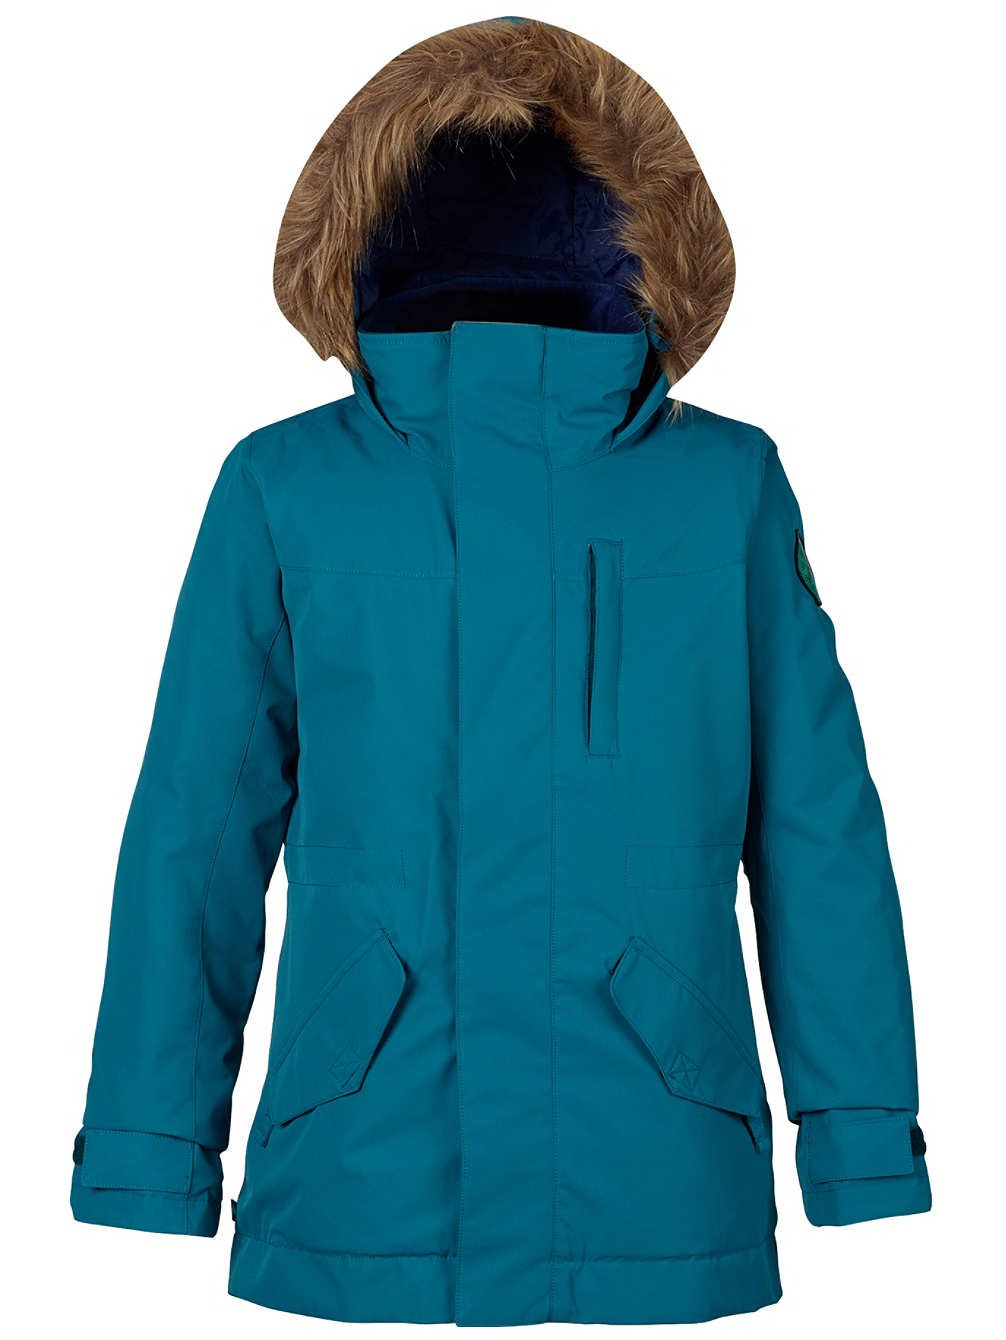 Burton Girls Youth Aubrey Parka Snow Jacket Jaded Size Medium by Burton